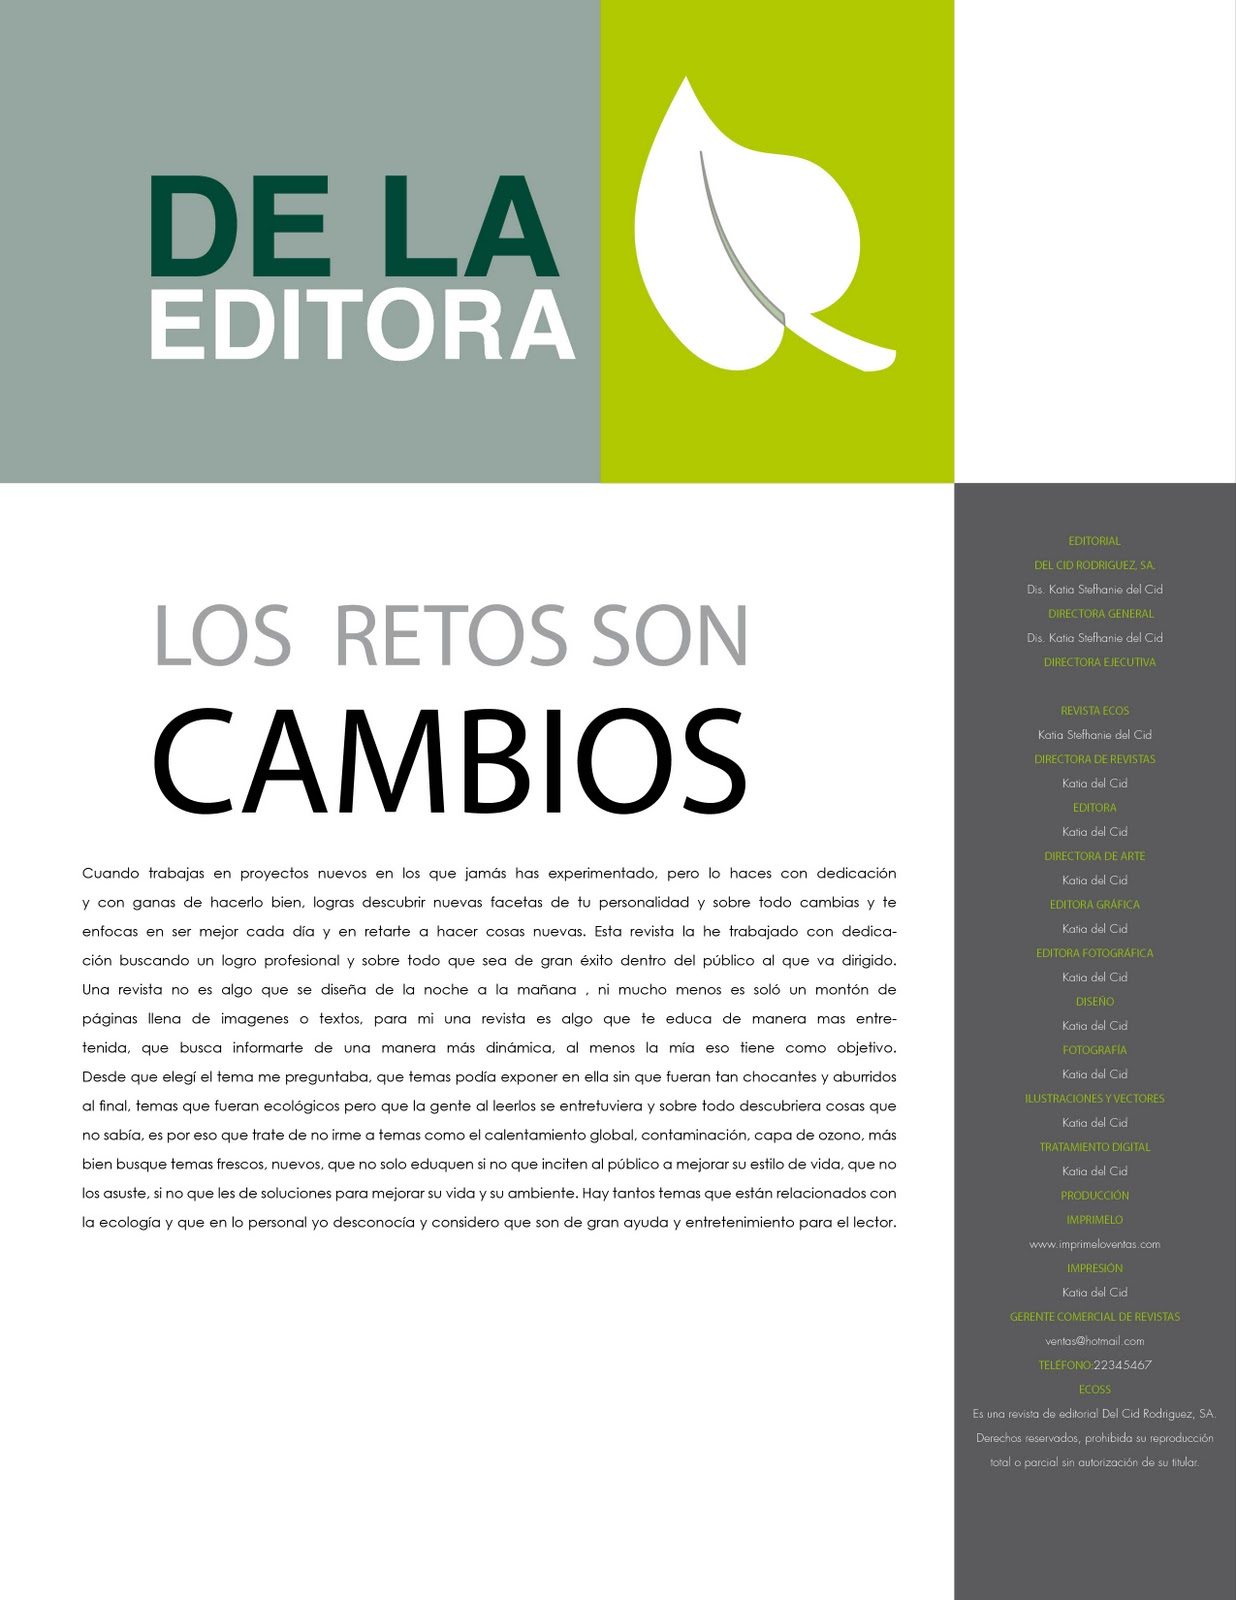 Dise o editorial kreative kd - Paginas de diseno de interiores ...